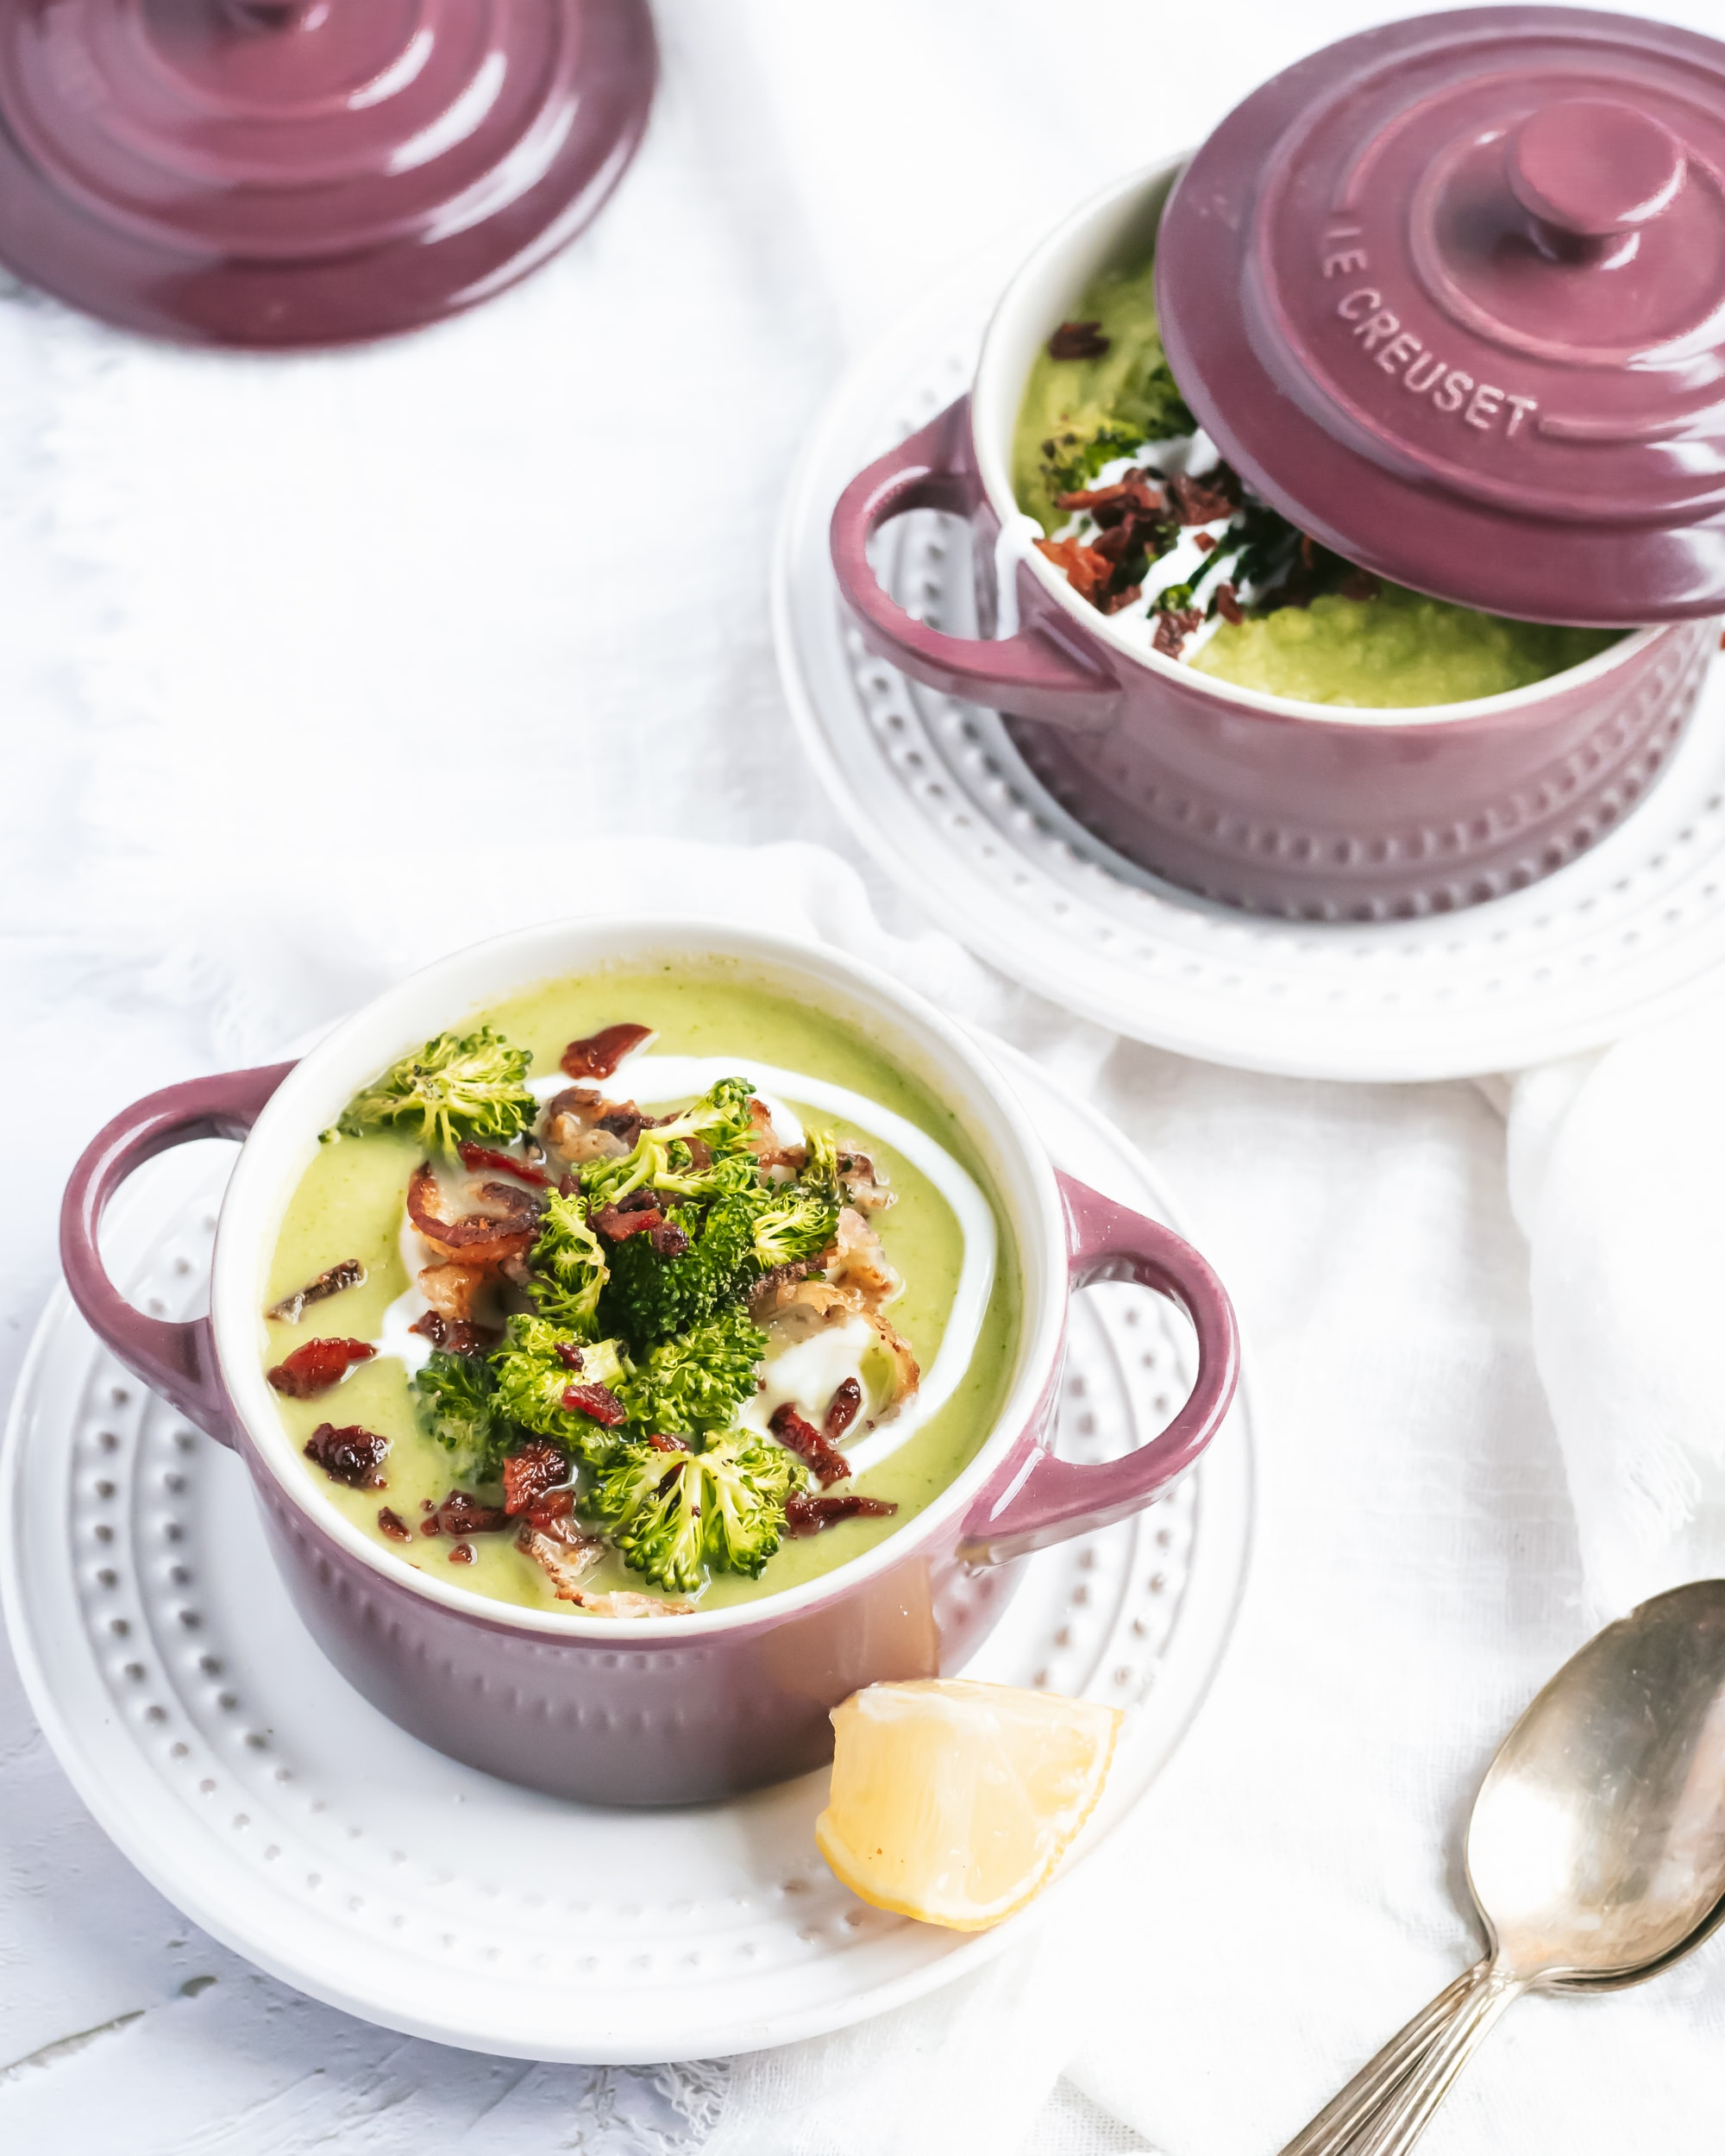 Two ramekins of broccoli stalk soup with all the fixins. A spoon rests on the table next to them.